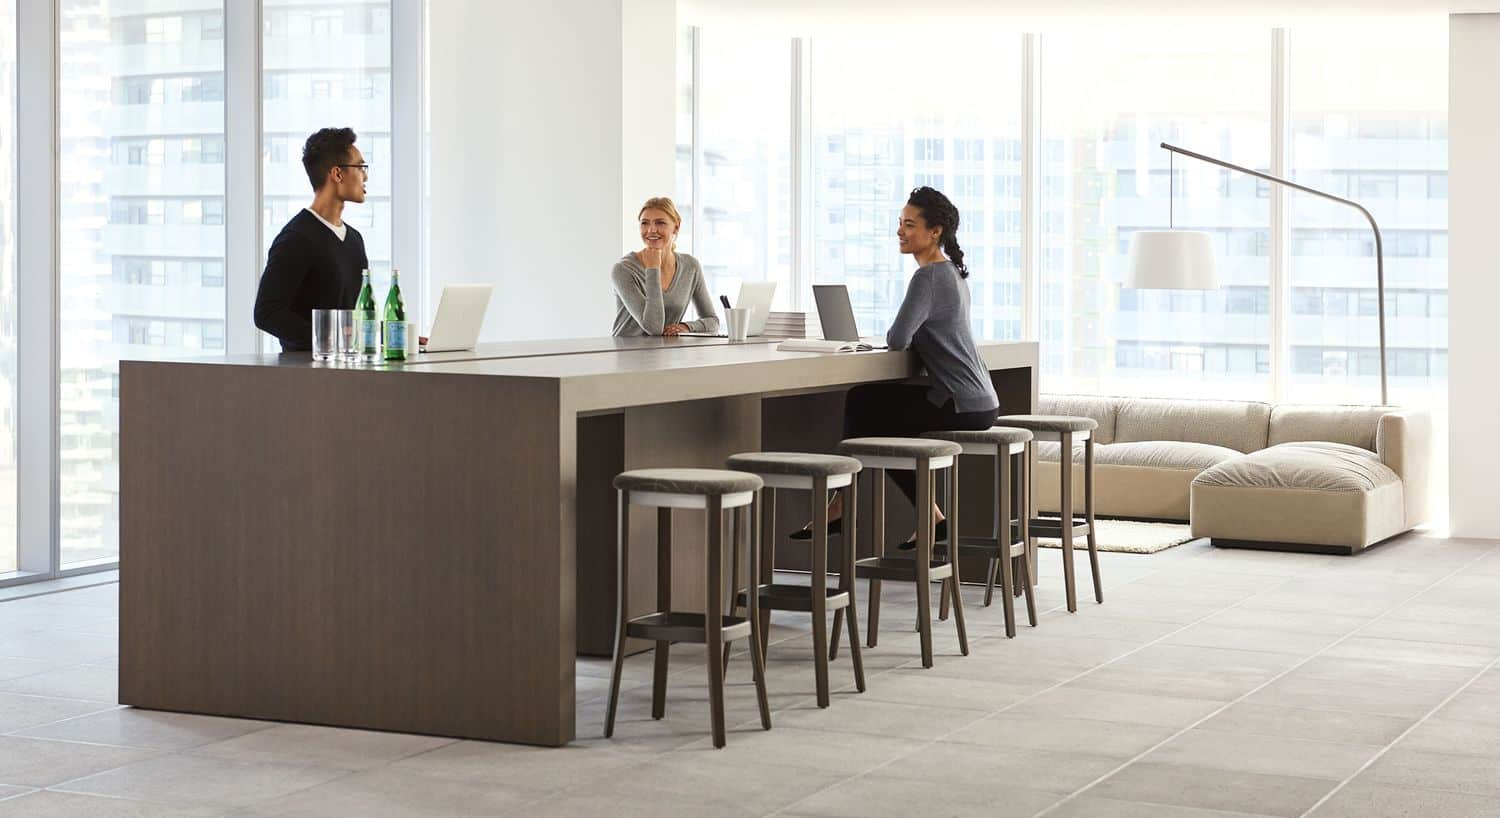 Three people standing/sitting at low community/conference table with bar stool style chairs in office